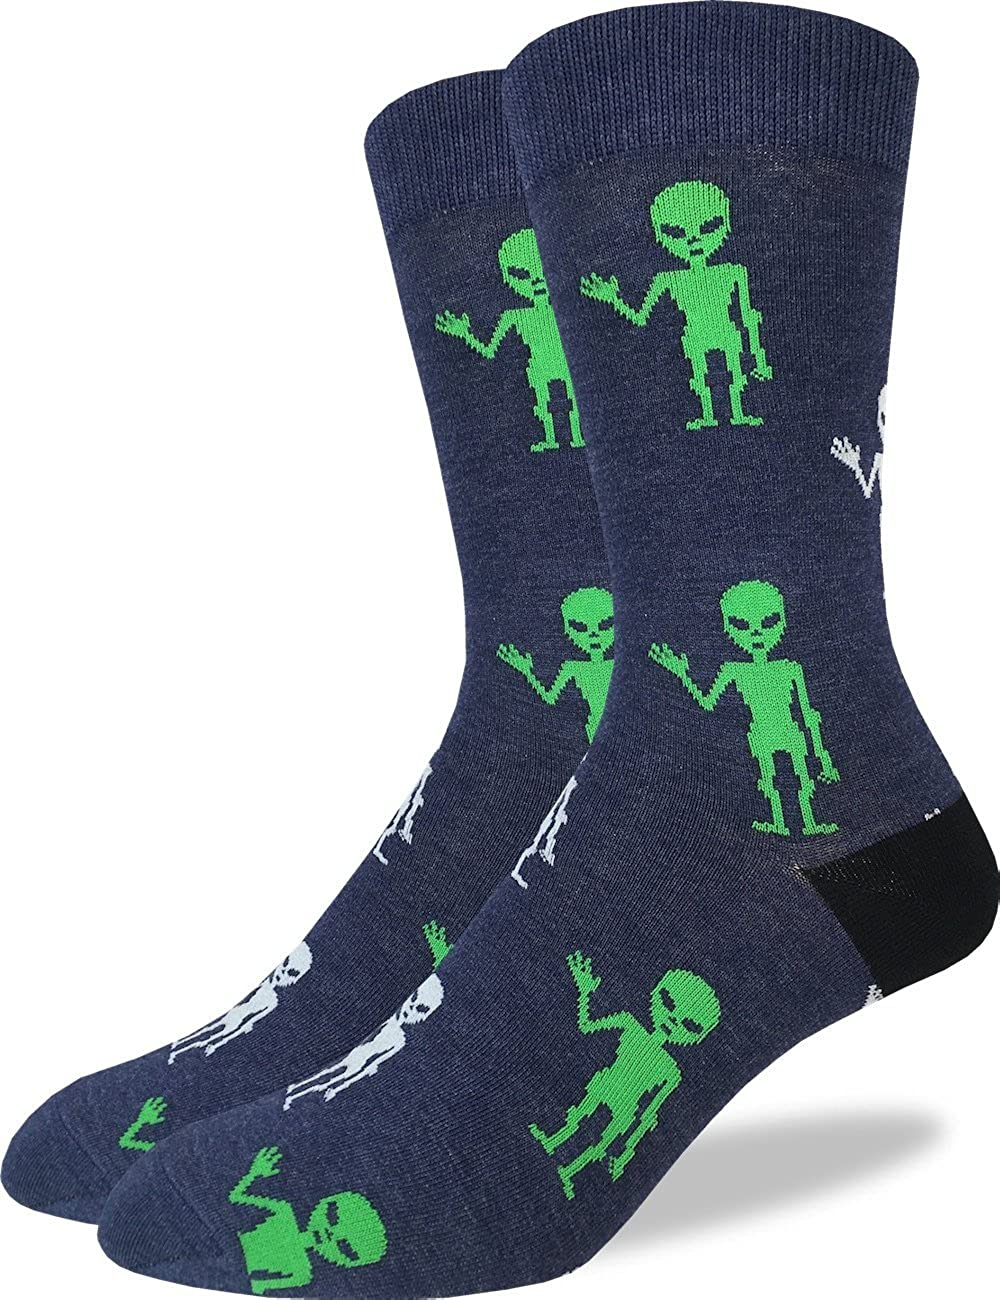 Good Luck Sock Men's Extra Large Aliens Socks - Shoe Size 13-17, Big & Tall 2024